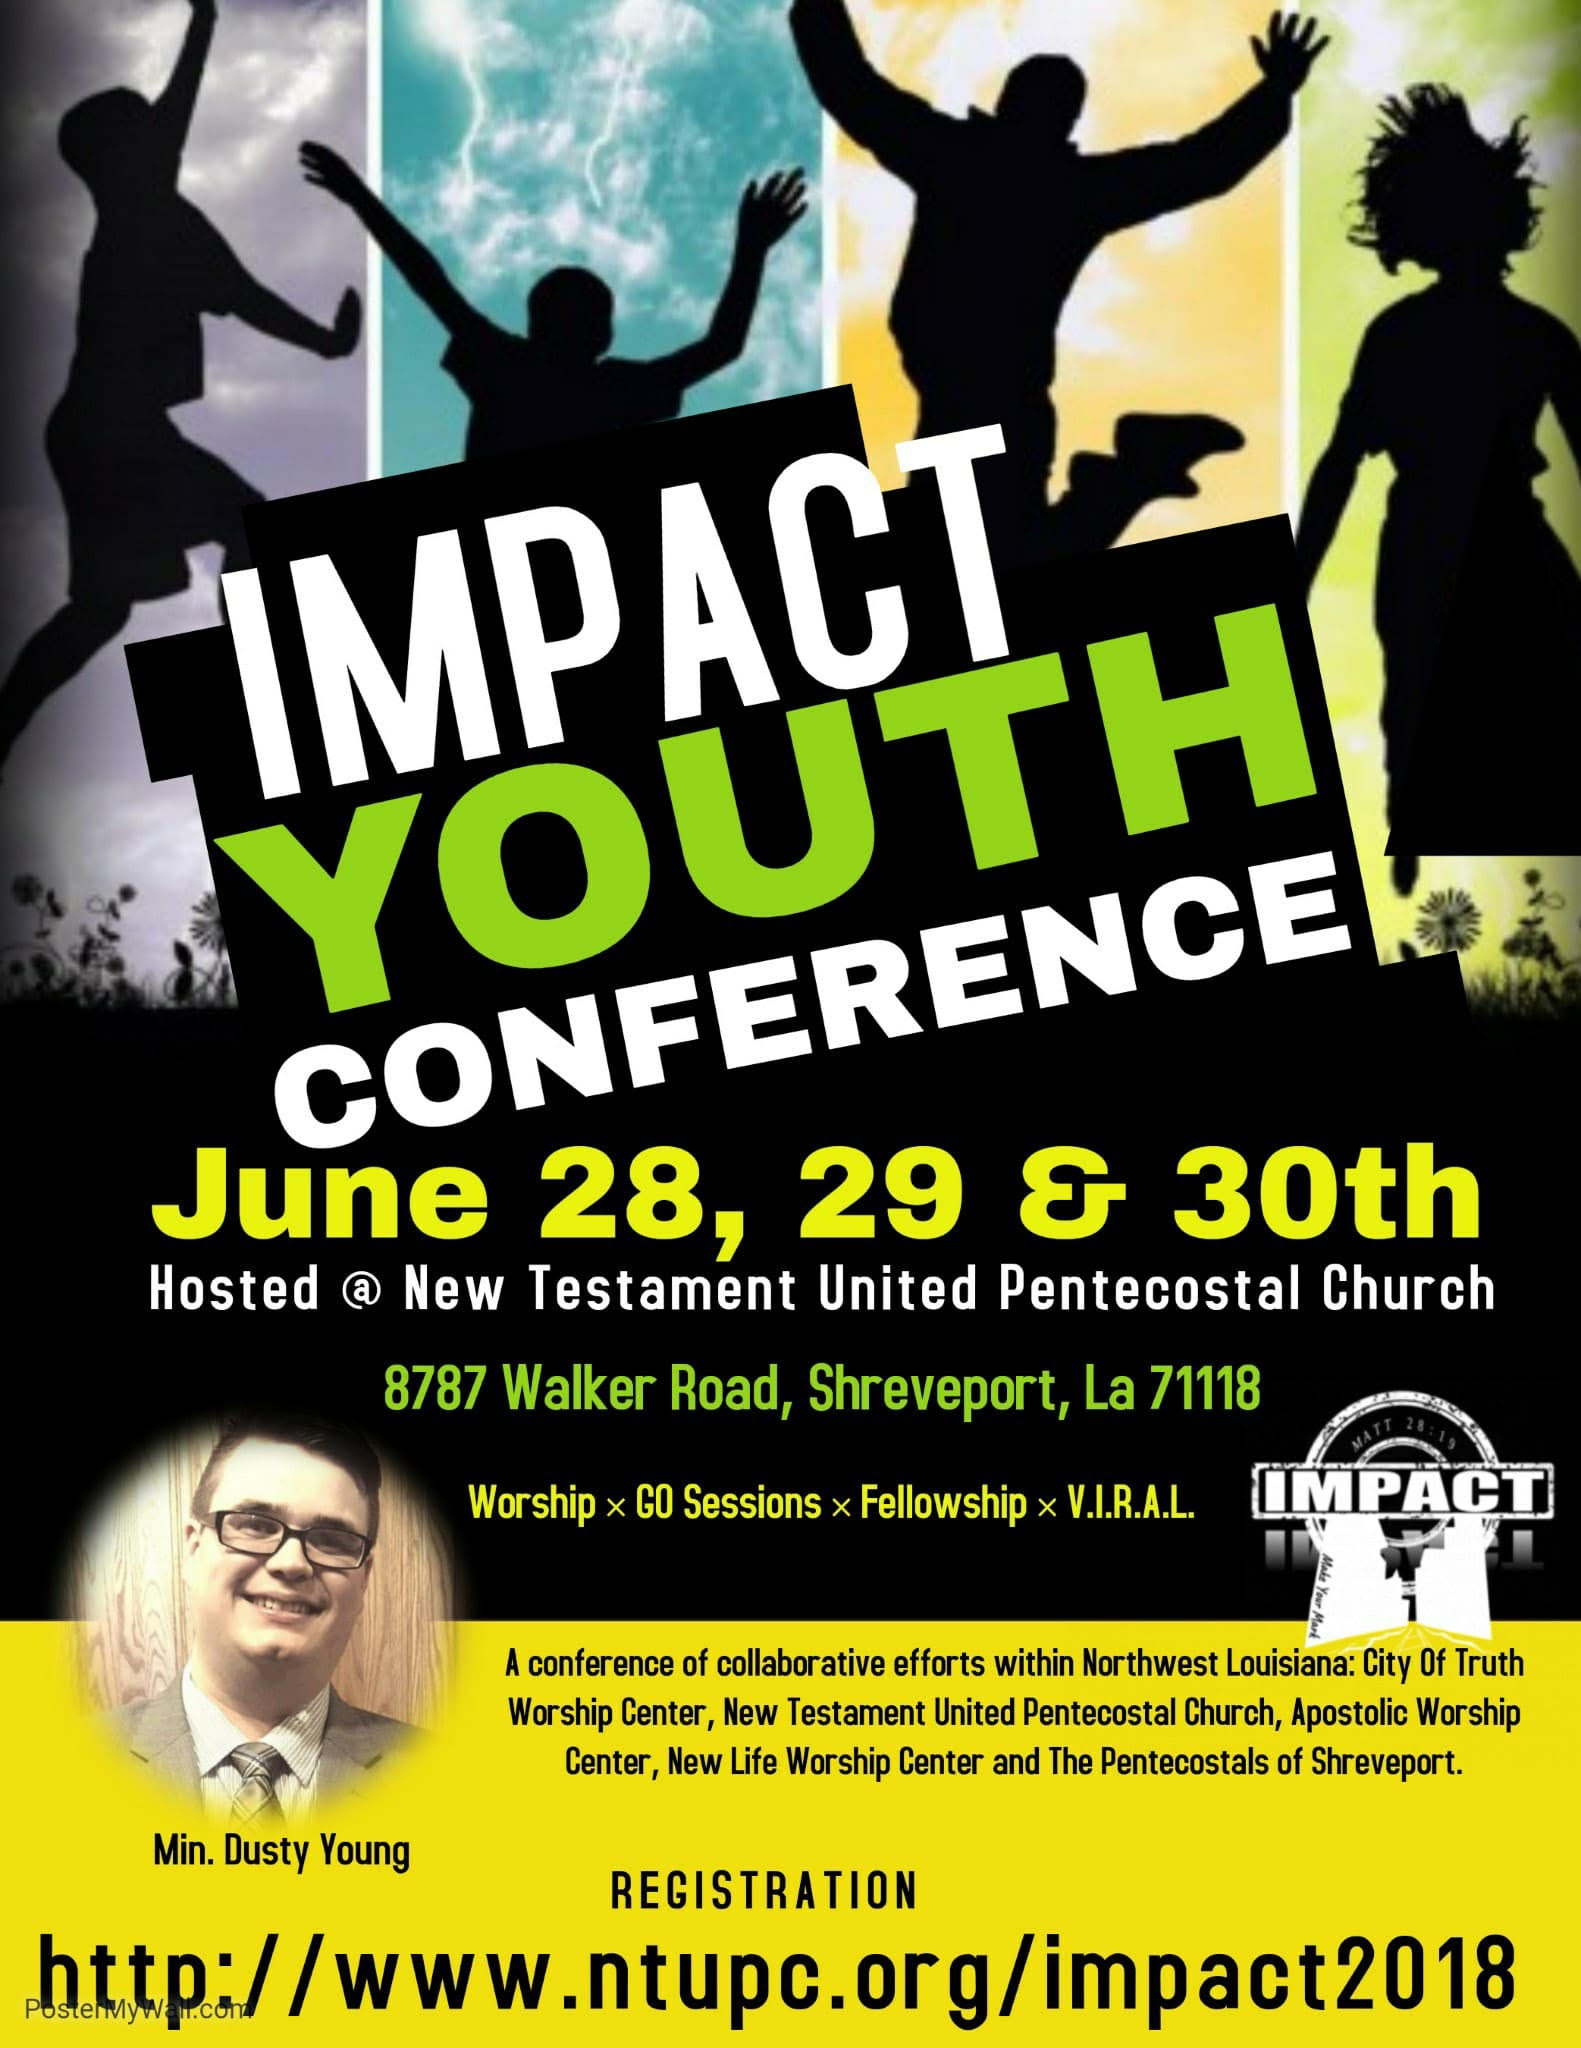 IMPACT Youth Conference – New Testament United Pentecostal Church